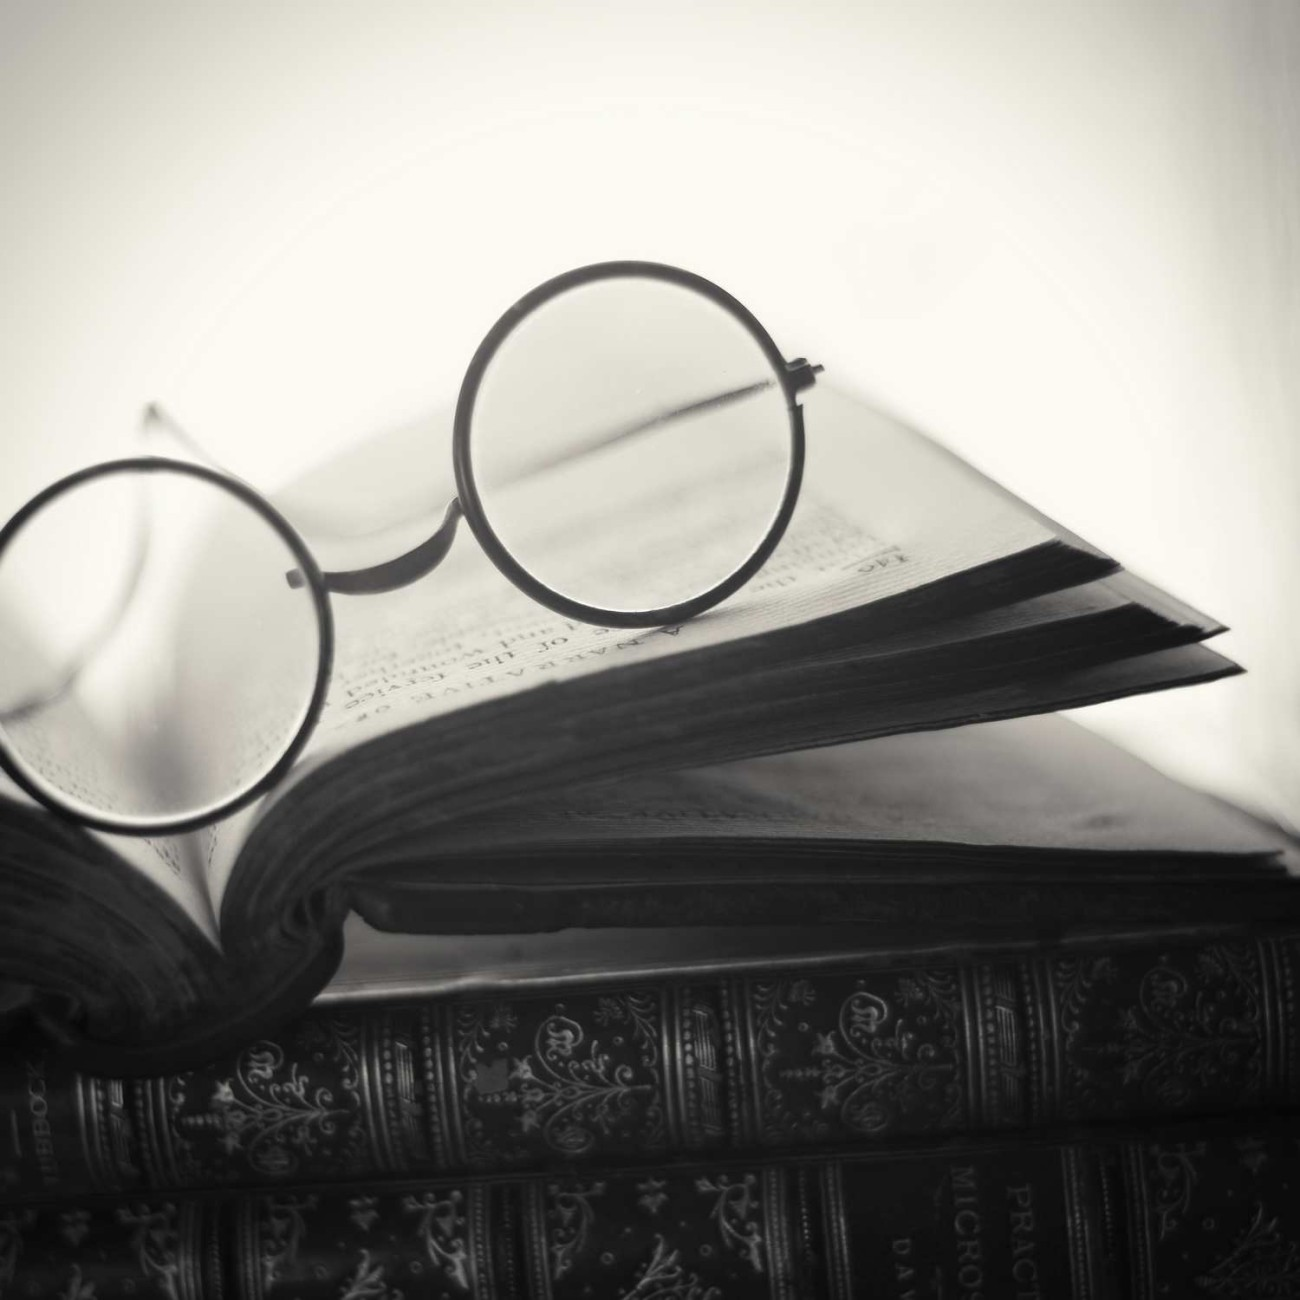 Books with round glasses, 2015